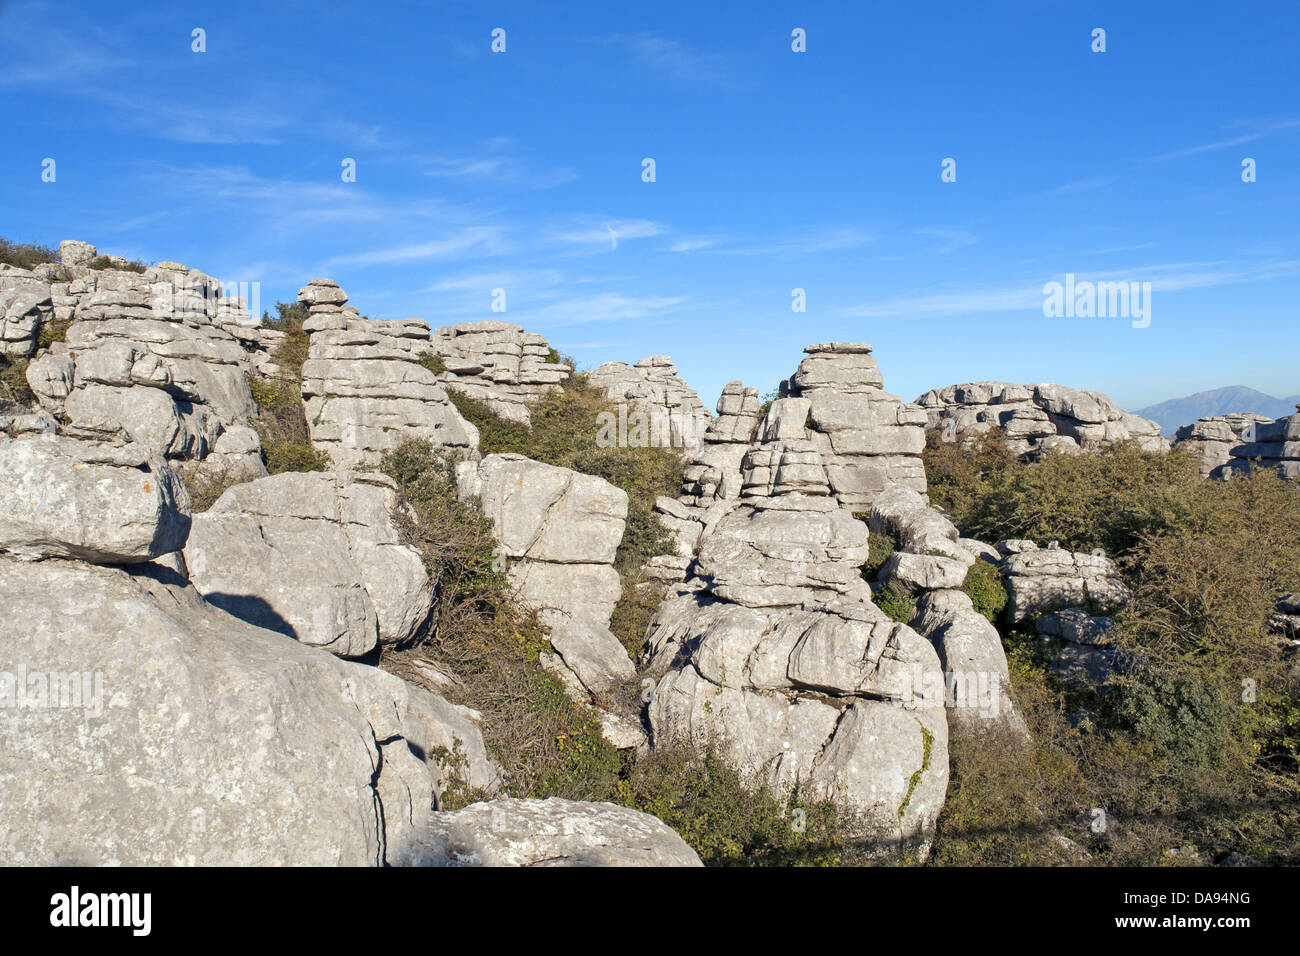 Ventanillas, cliff formations, tourism, spectacle of nature, rock, cliff, mountains, scenery, trees, plants, Europe, - Stock Image